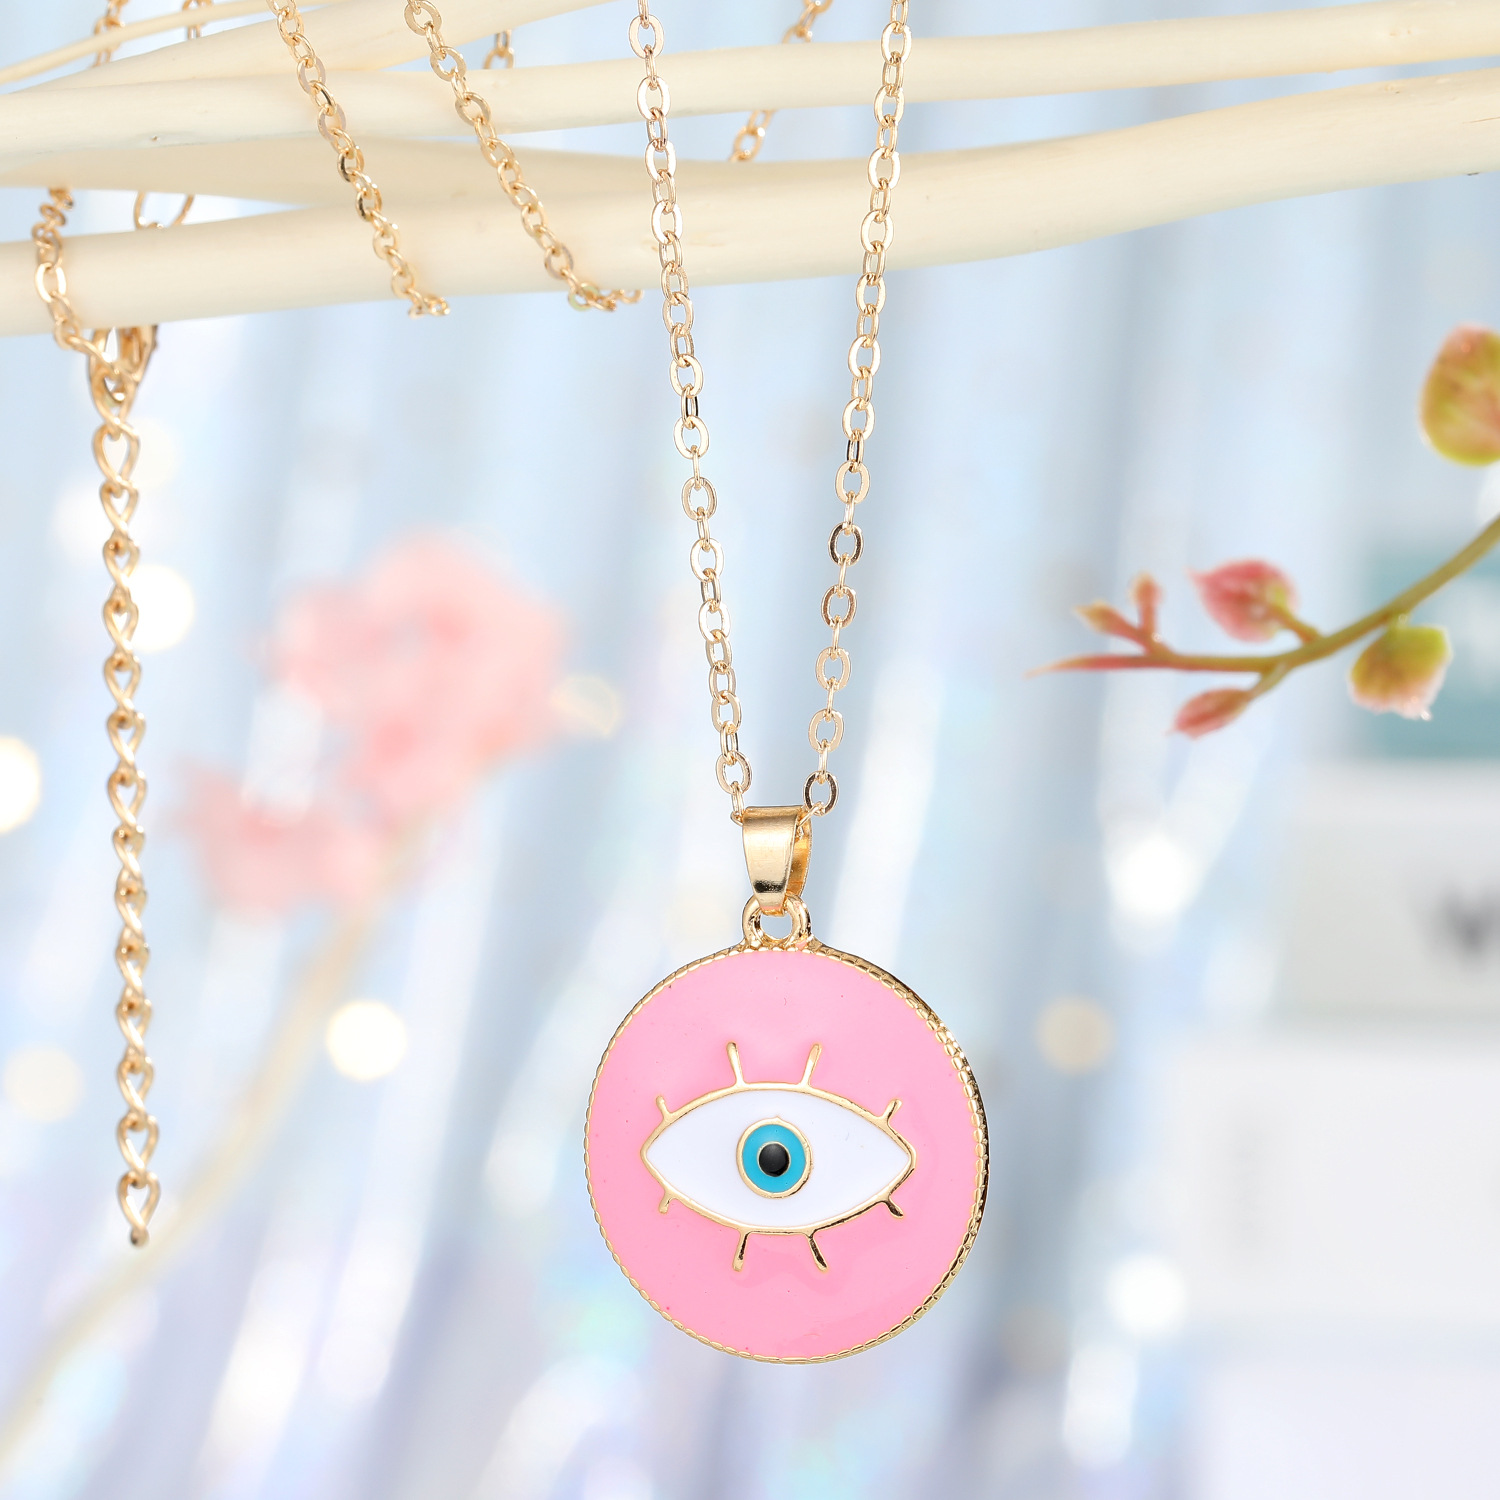 fashion jewelry Turkish blue eyes pendant necklace personality drop oil eyes necklace ladies accessories wholesale nihaojewelry NHGO223348